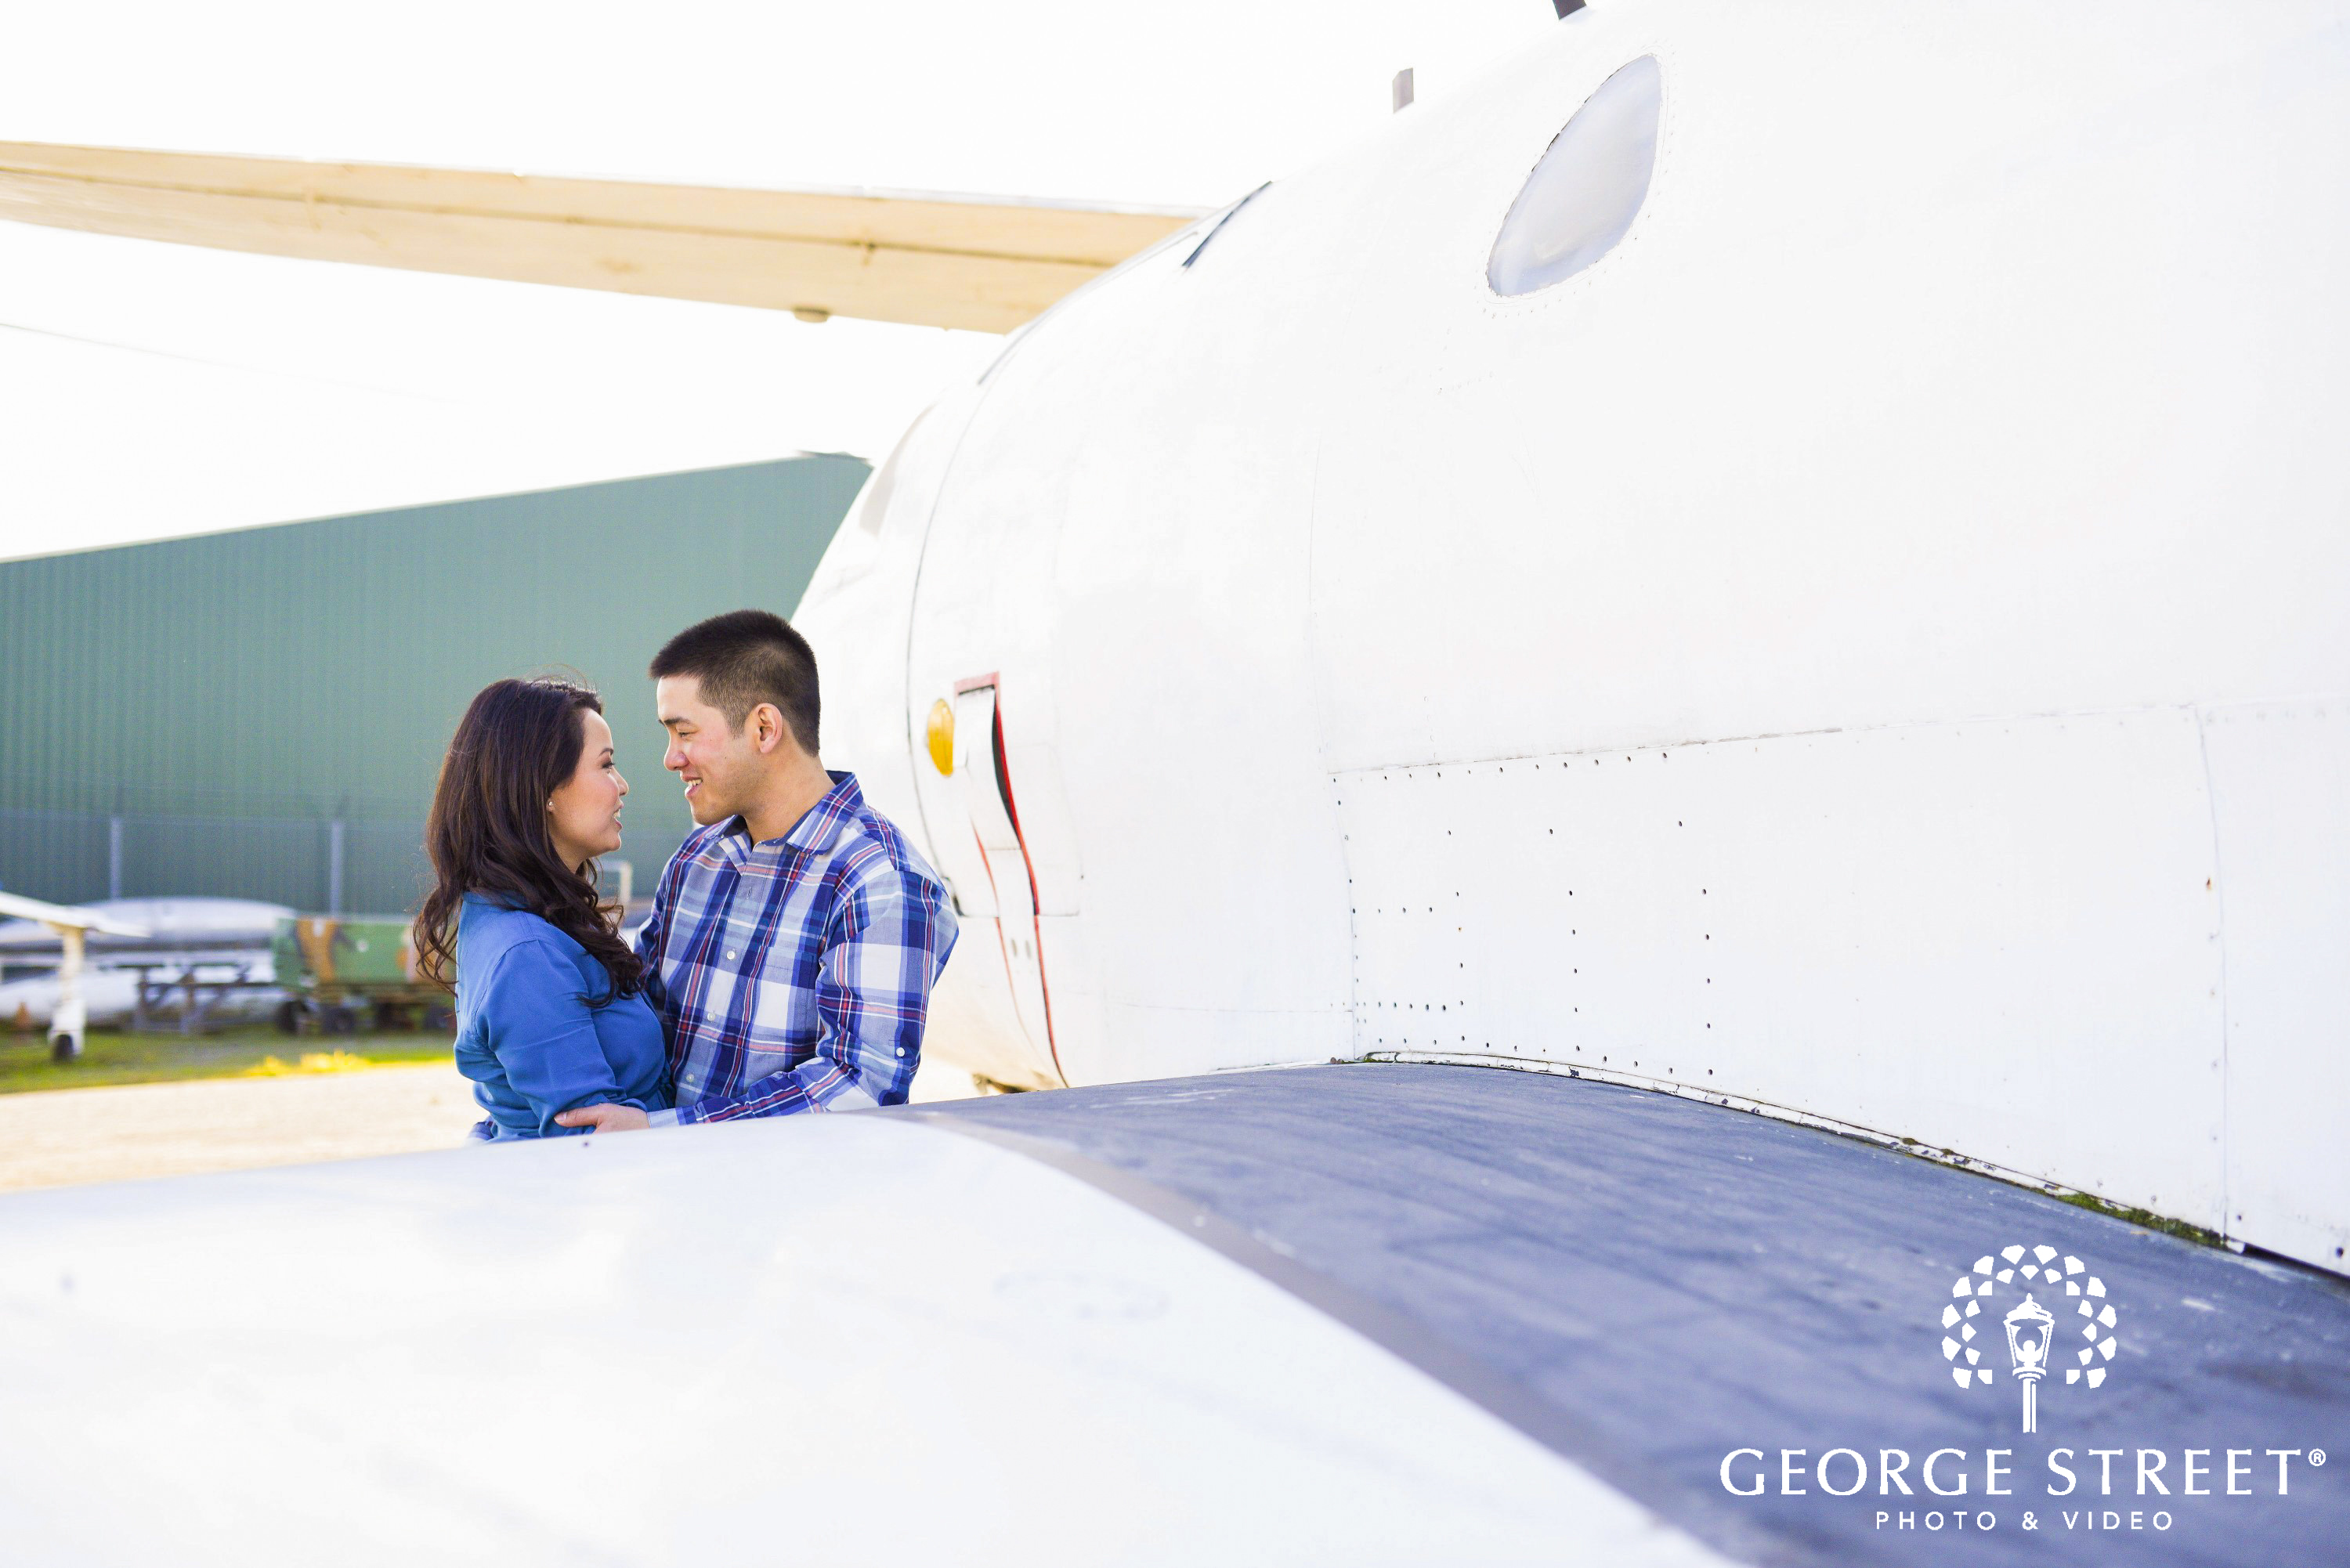 couple at airport gazing into each others eyes